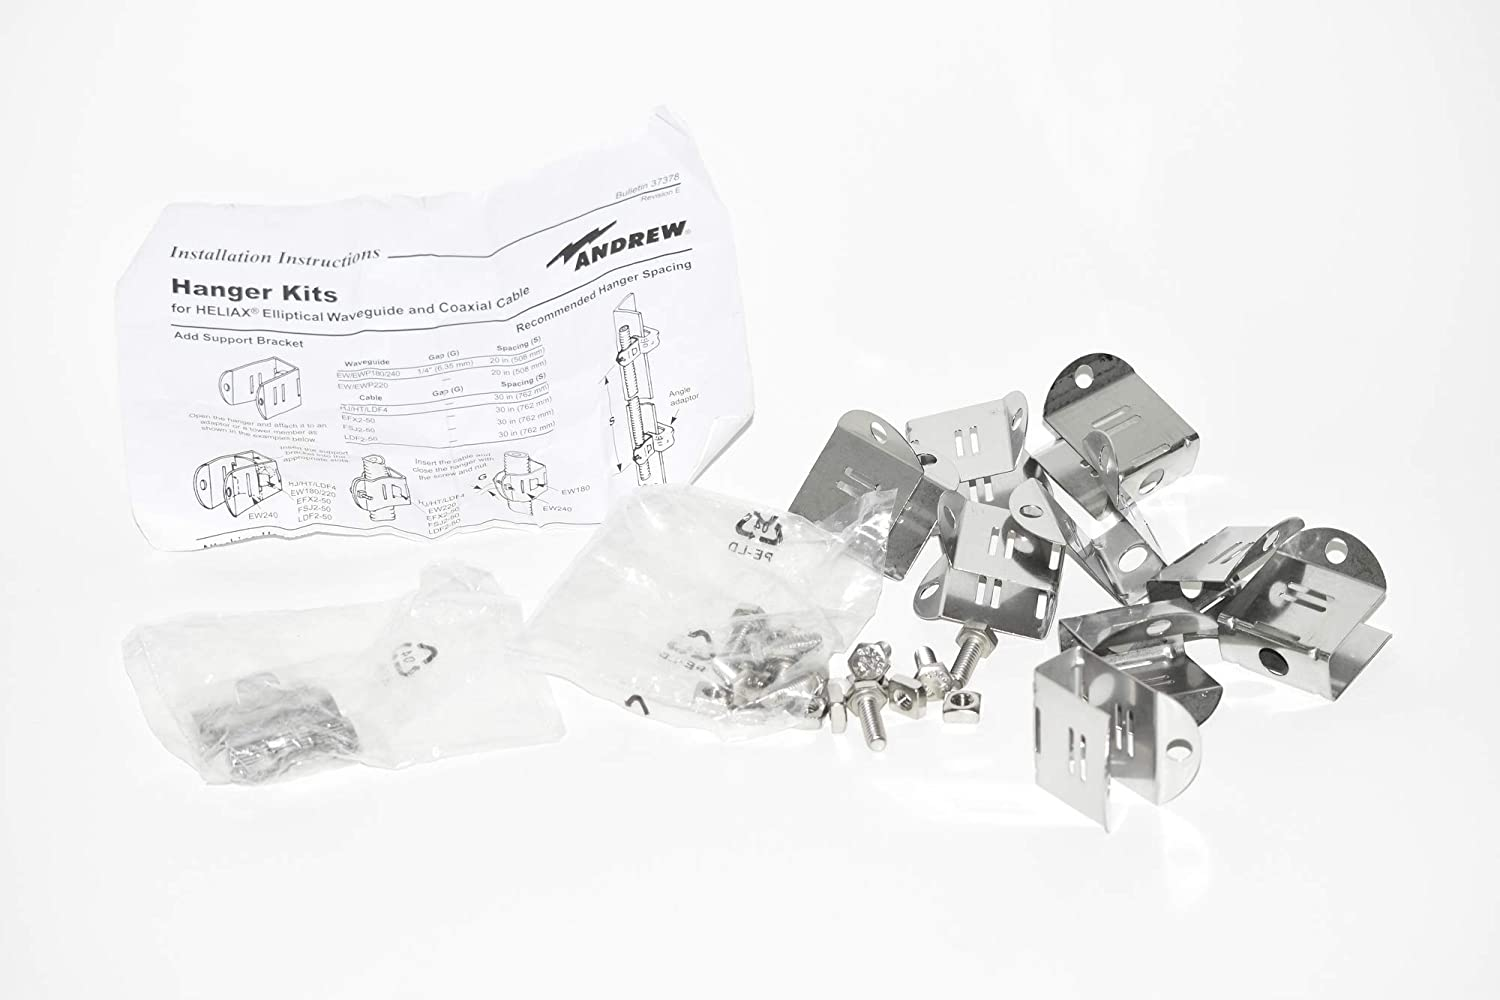 ANDREW HELIAX PRODUCTS Heliax Cable Hanger Kit-43211A